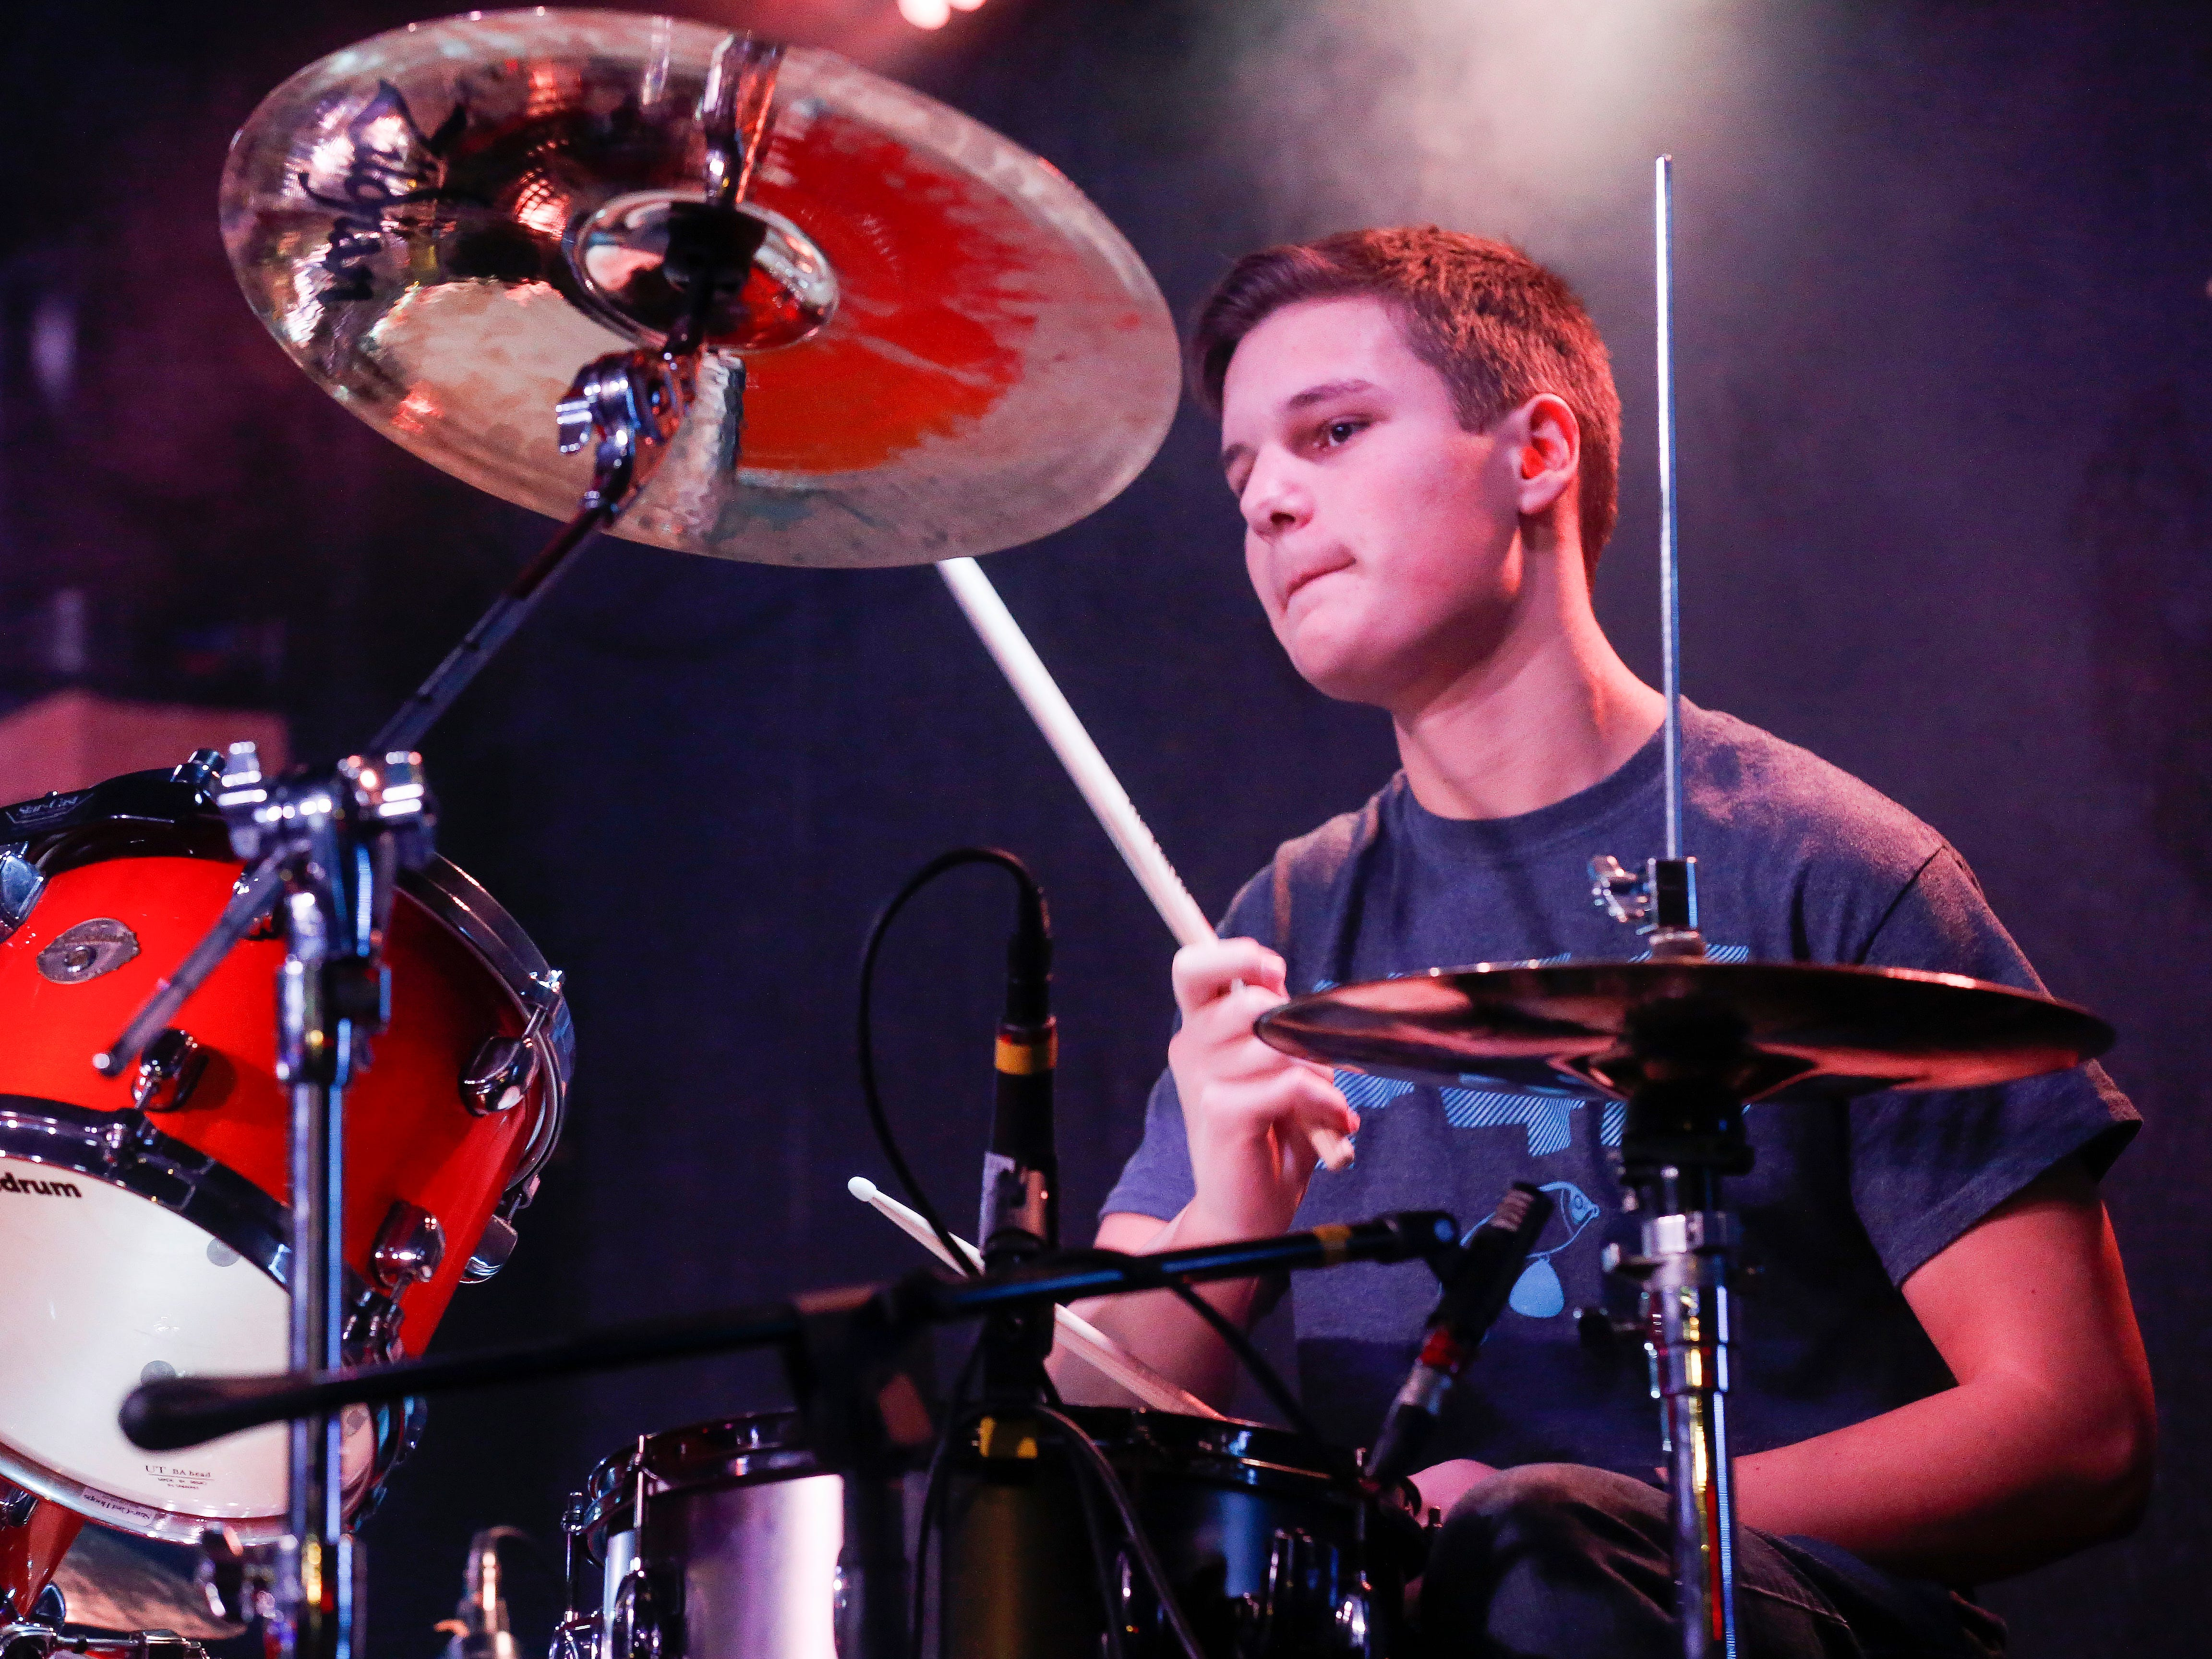 Josh Henry, 16, a junior at Greenwood Laboratory School, plays drums with his band Fishing for Saturday at Krave on Friday, Jan. 18, 2019.